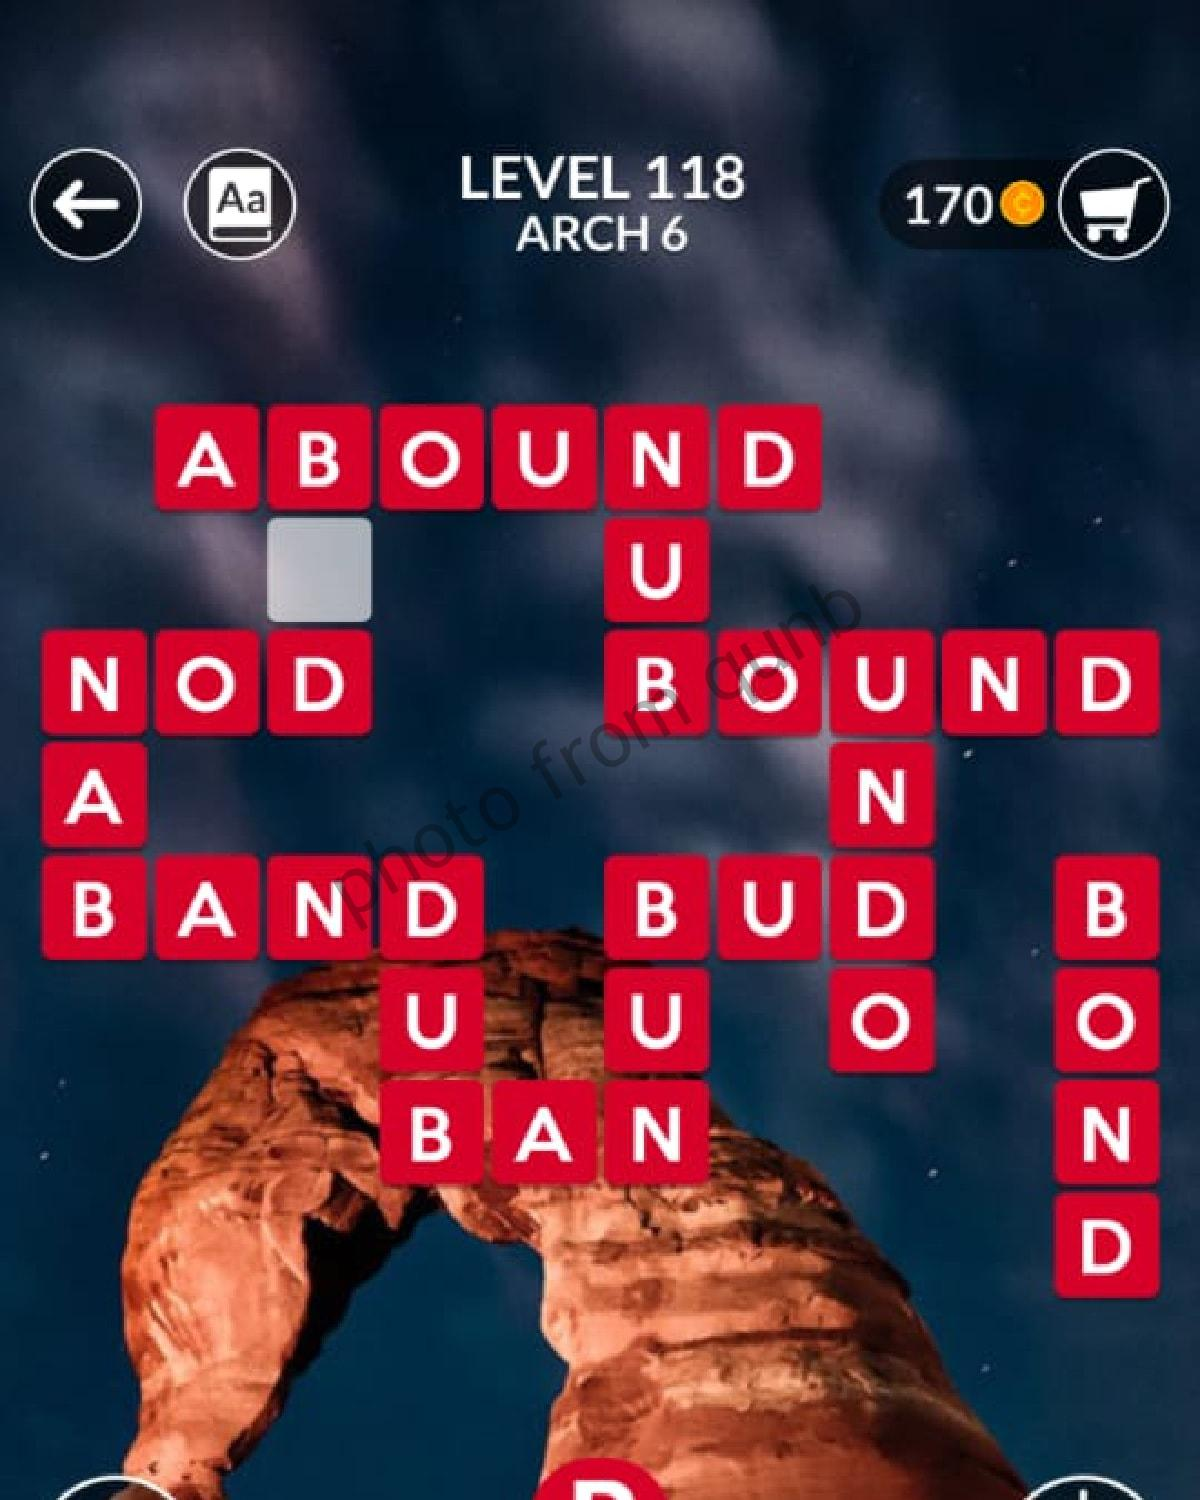 Wordscapes Level 118 Arch 6 Answers Qunb